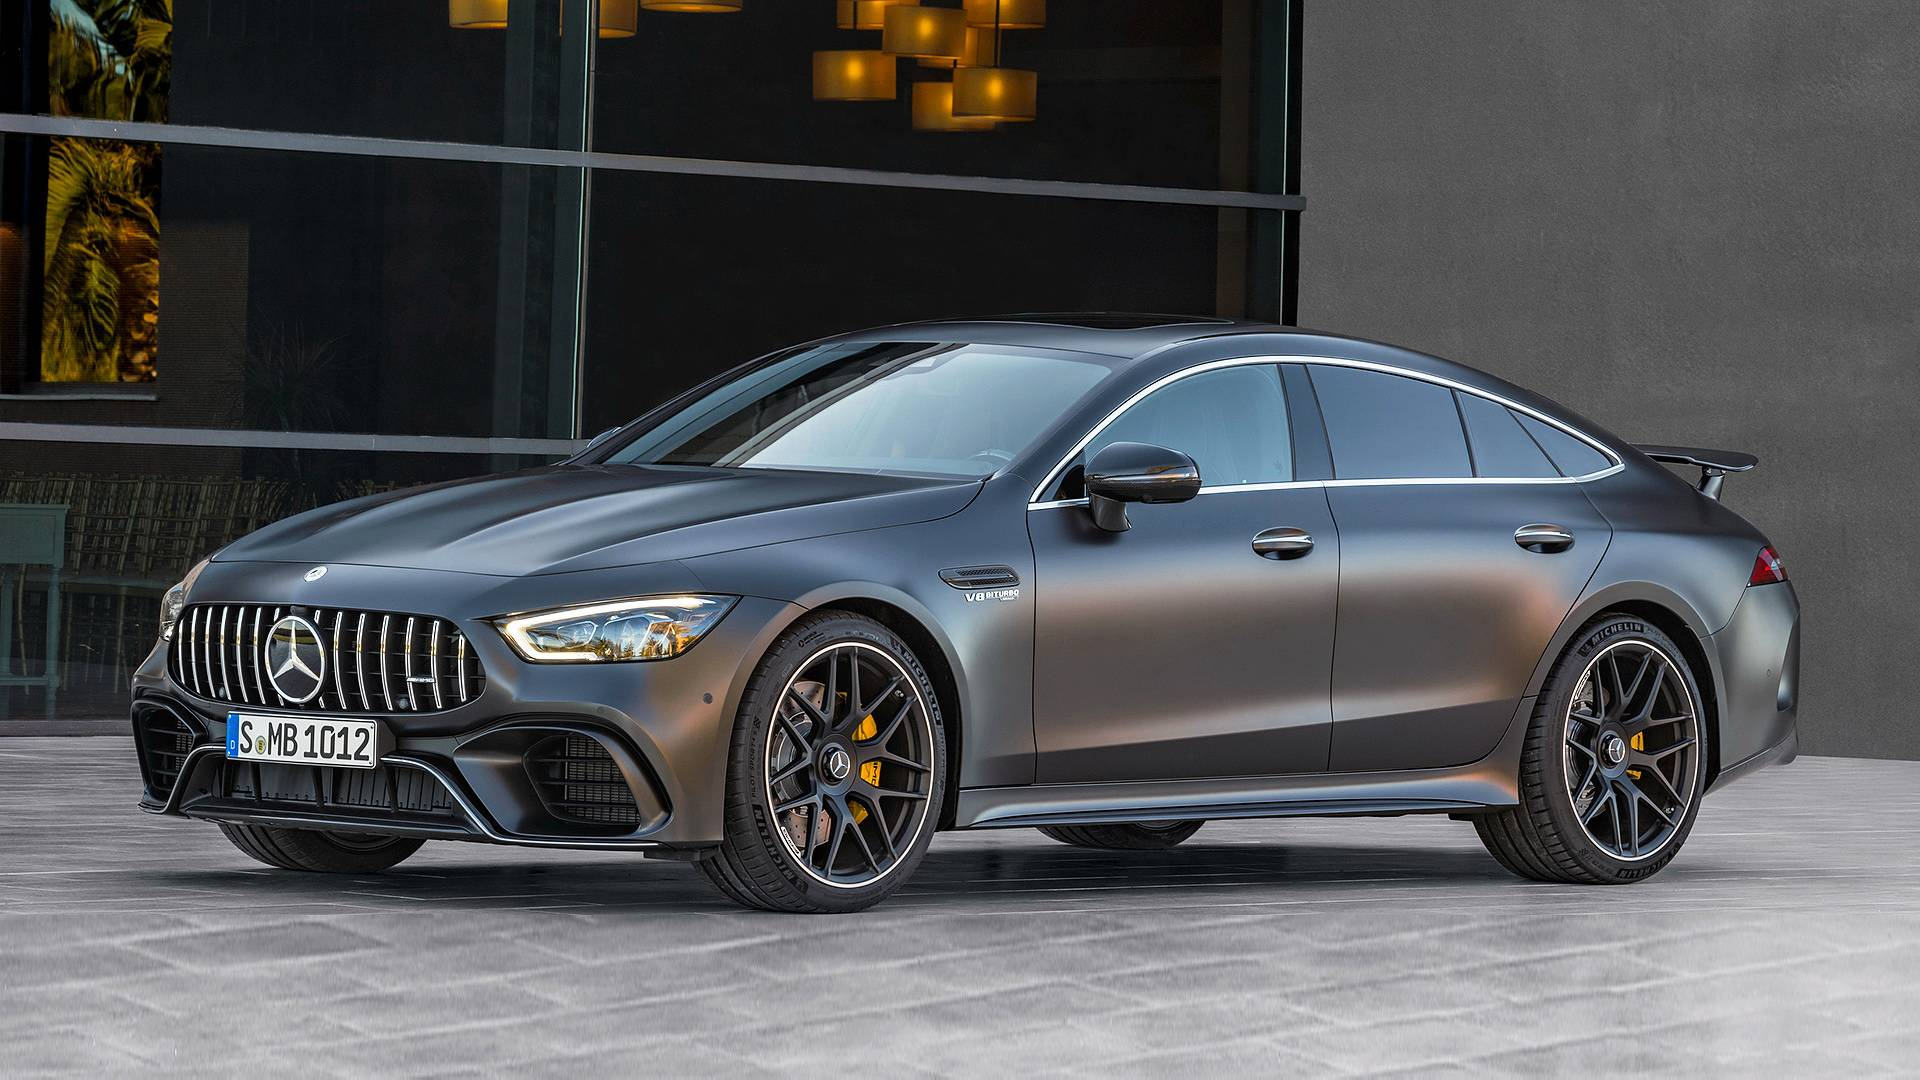 Mercedes Amg Mercedes Benz Amg Gt Coupe News And Reviews Motor1